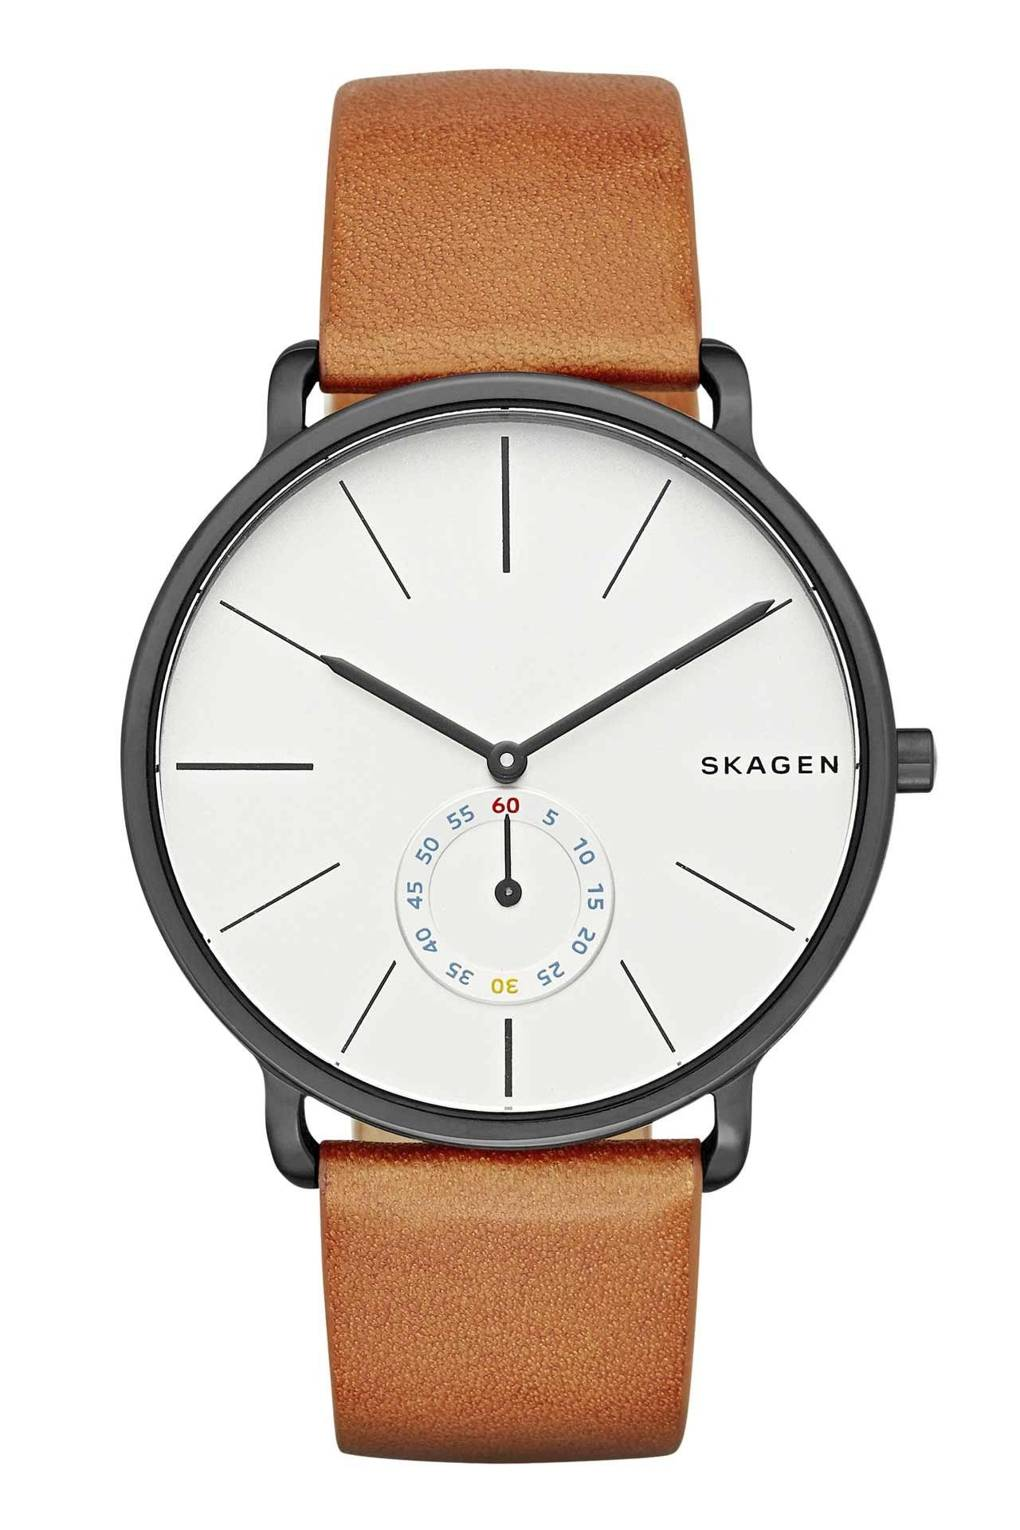 men for extras the under best beauty accessories watches plain switzerland mens fashion independent leather straps indybest